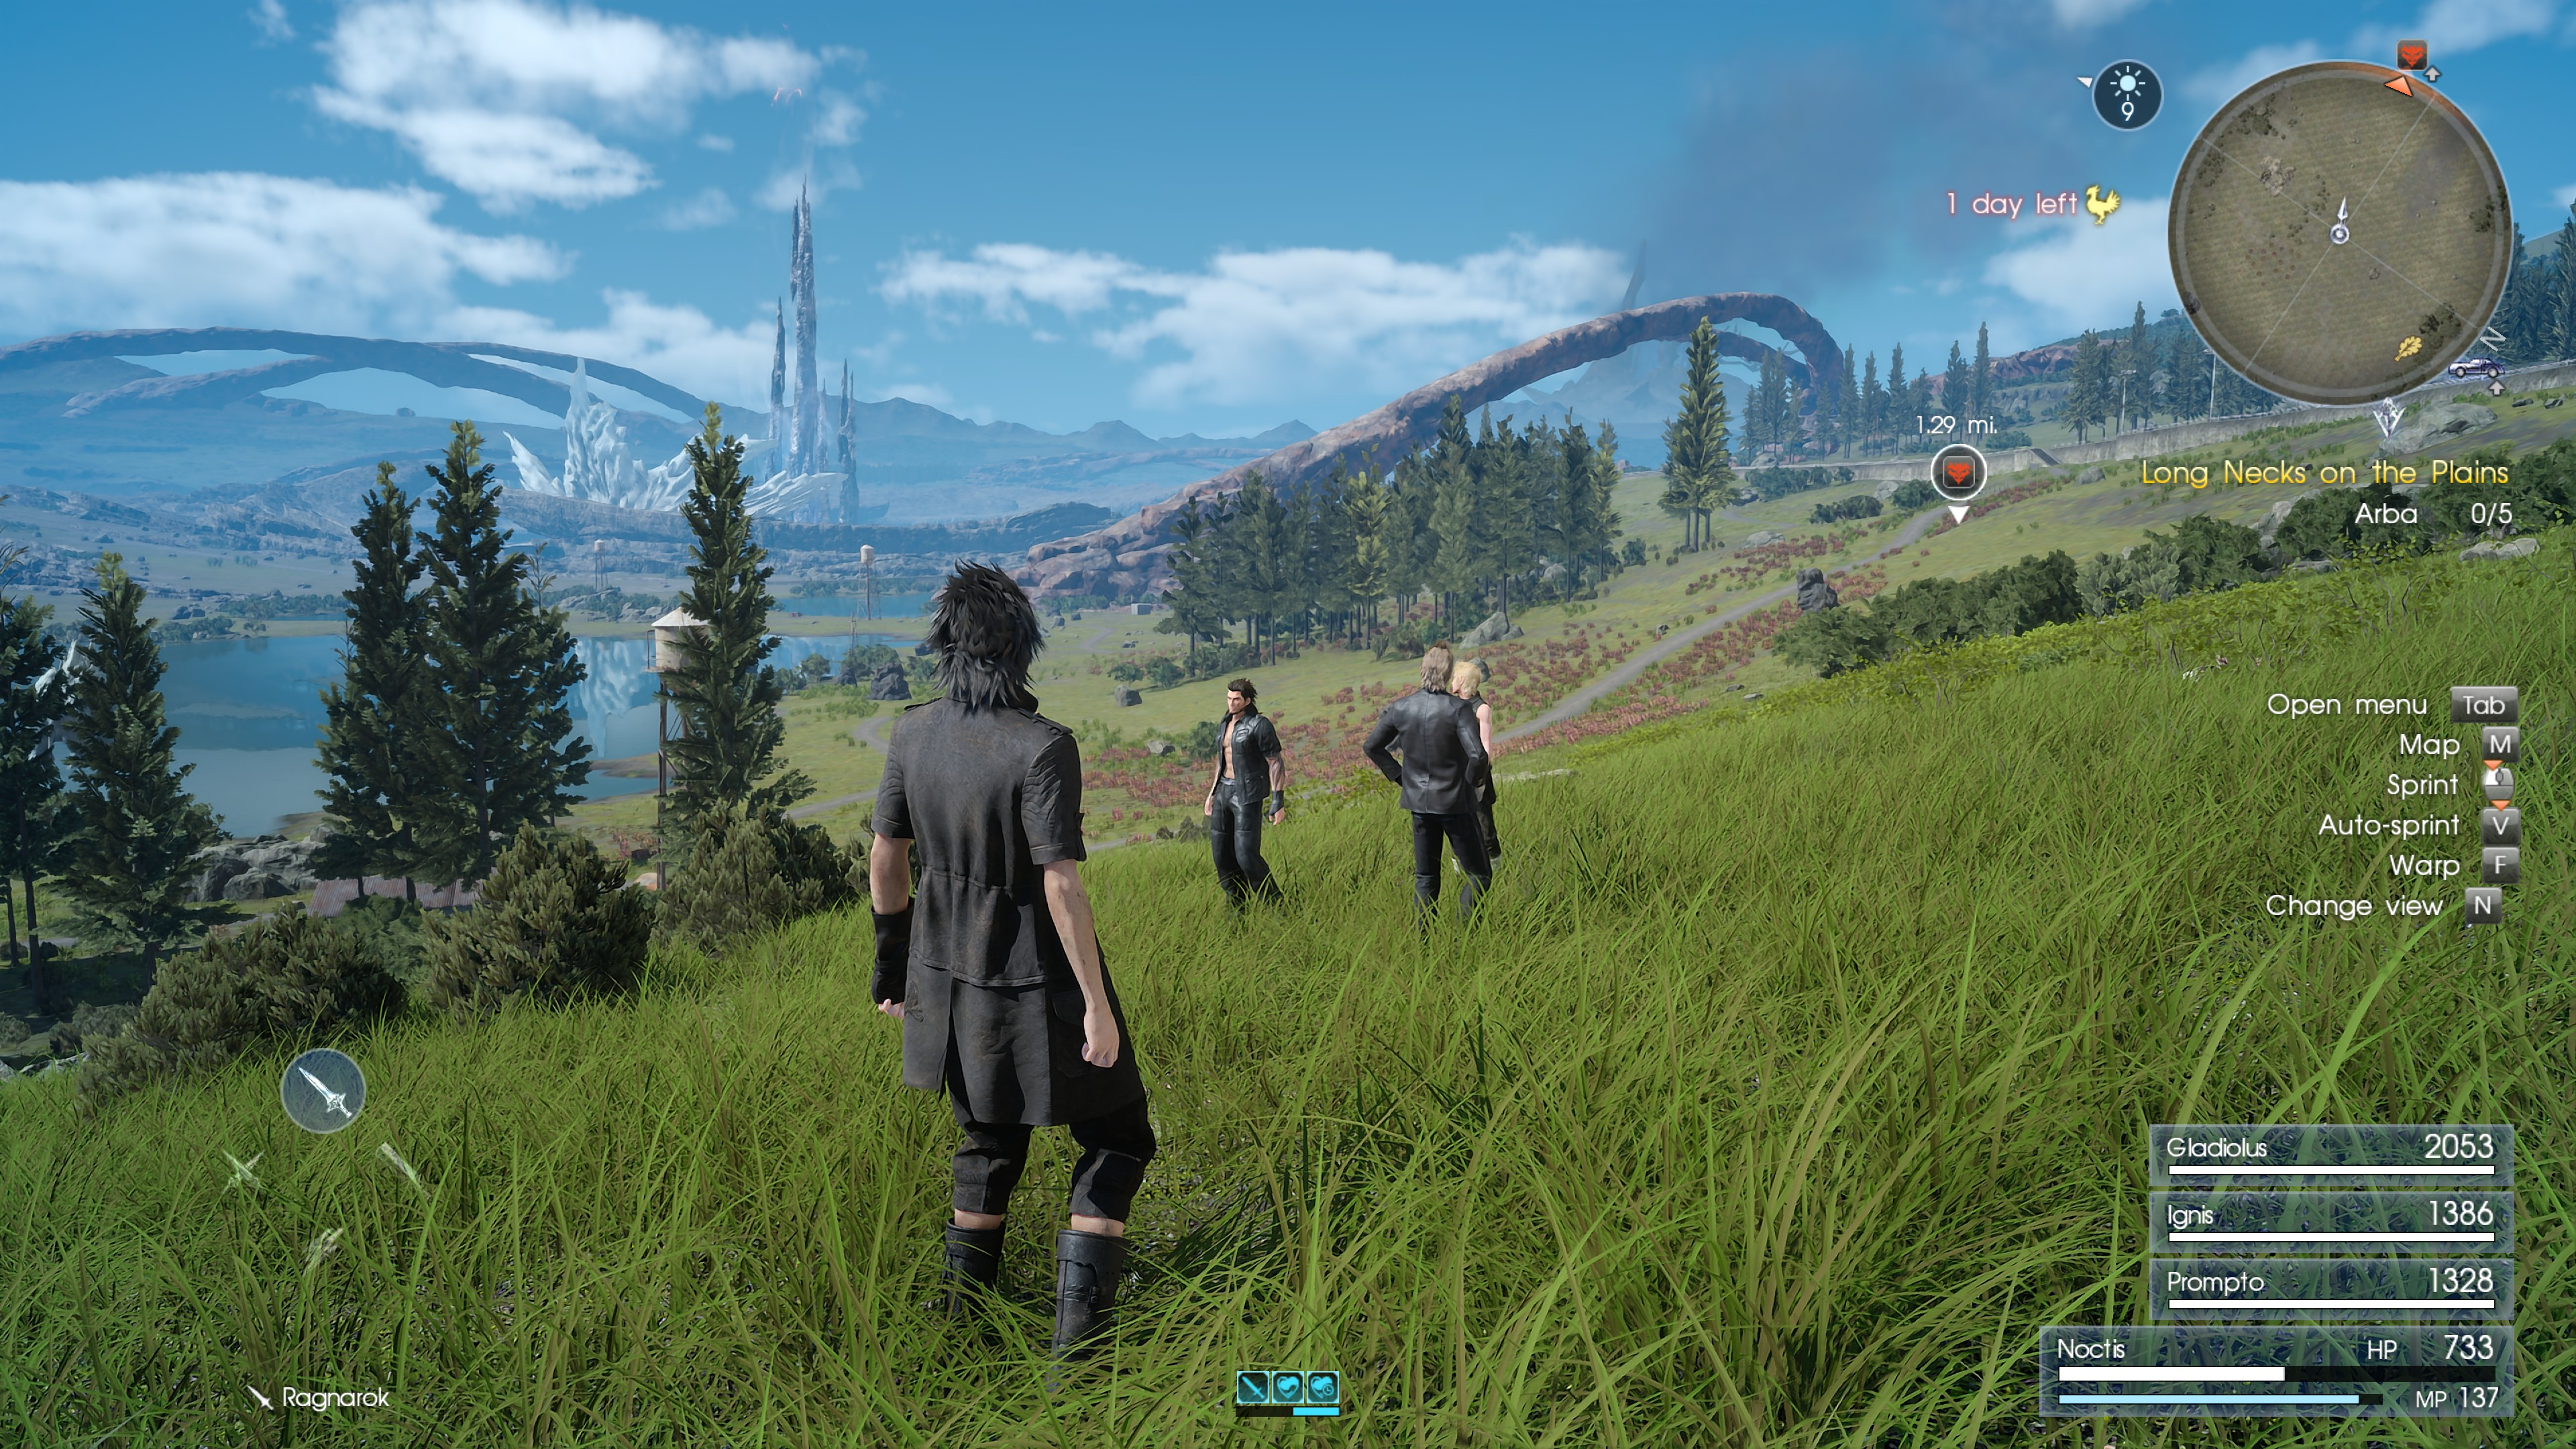 Final Fantasy Xv 2018 4k Hd Games 4k Wallpapers Images: Final Fantasy 15's DLSS Tech Boosts PC Performance By 10